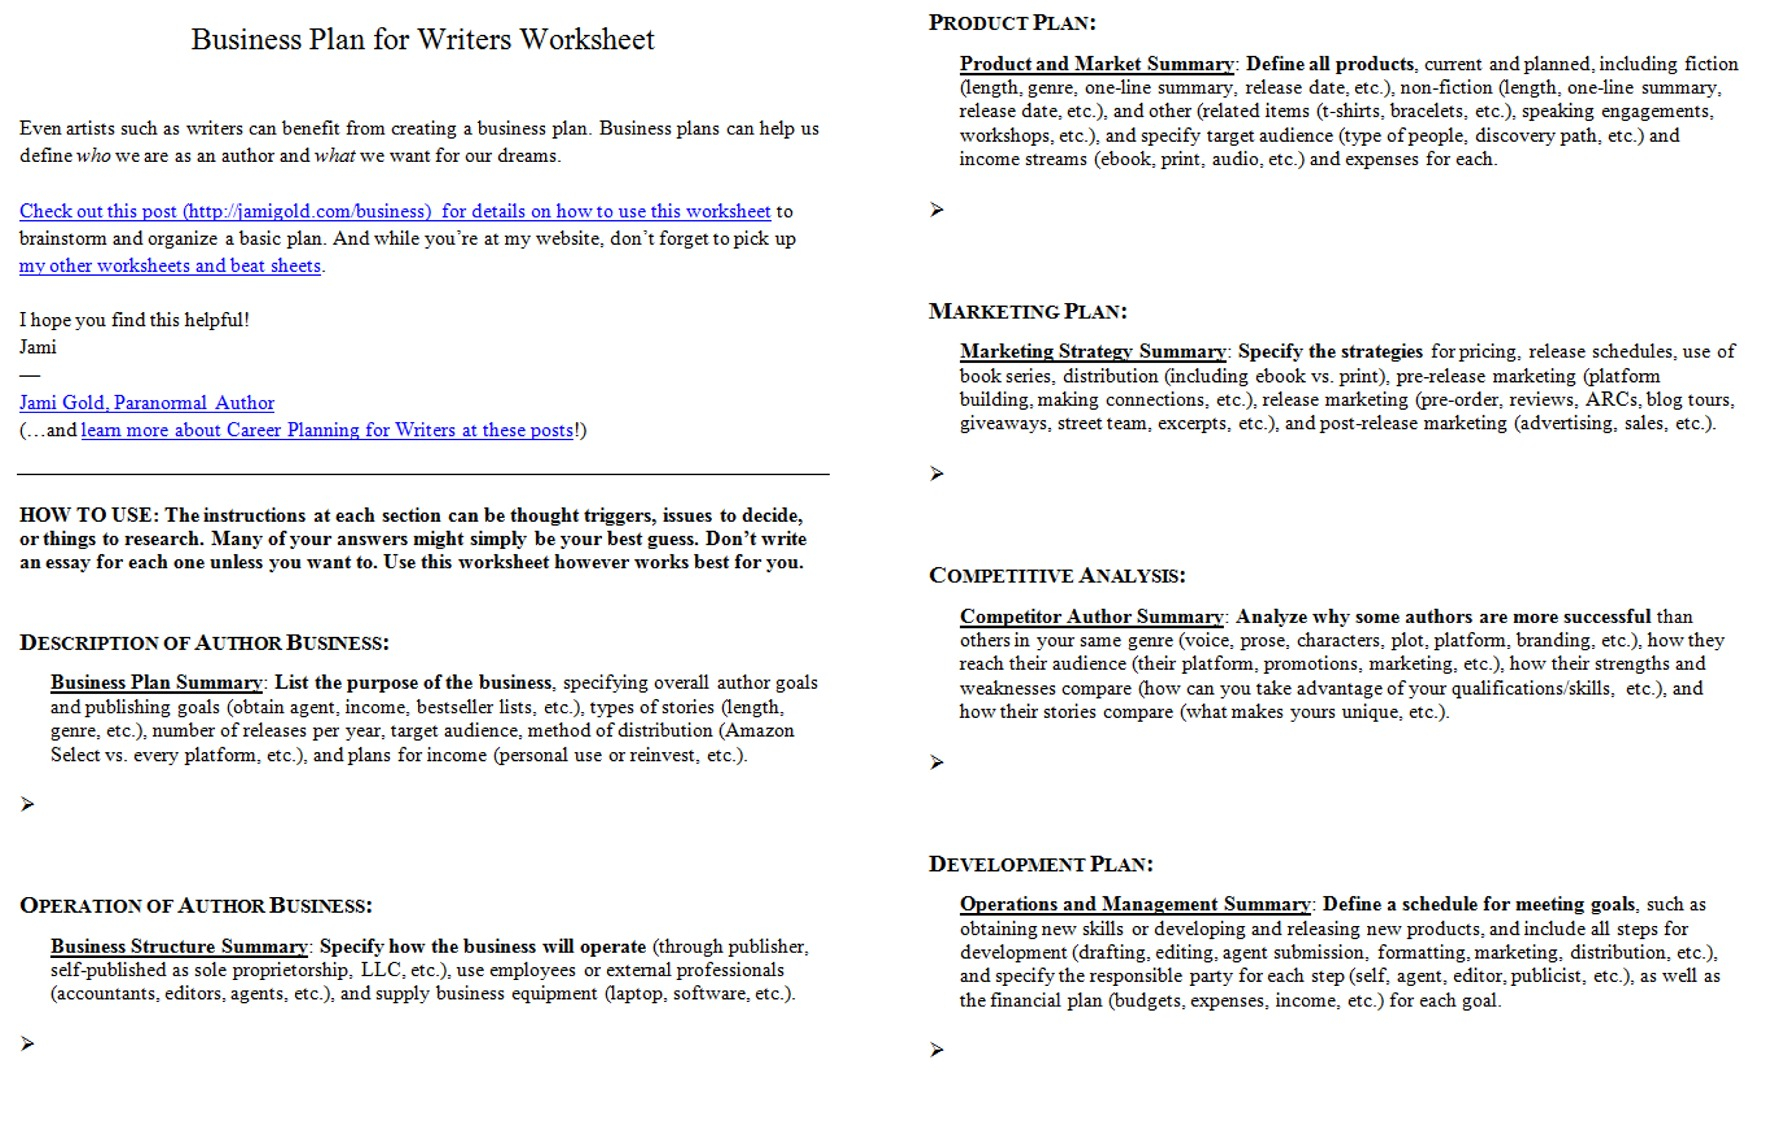 Aldiablosus  Inspiring Worksheets For Writers  Jami Gold Paranormal Author With Lovely Screen Shot Of Both Pages Of The Business Plan For Writers Worksheet With Enchanting Adding Subtracting Fractions Worksheet Also Counting Worksheet In Addition Th Grade Math Worksheets With Answer Key And Same And Different Worksheets As Well As Gravity Worksheet Additionally Sentence Completion Worksheets From Jamigoldcom With Aldiablosus  Lovely Worksheets For Writers  Jami Gold Paranormal Author With Enchanting Screen Shot Of Both Pages Of The Business Plan For Writers Worksheet And Inspiring Adding Subtracting Fractions Worksheet Also Counting Worksheet In Addition Th Grade Math Worksheets With Answer Key From Jamigoldcom